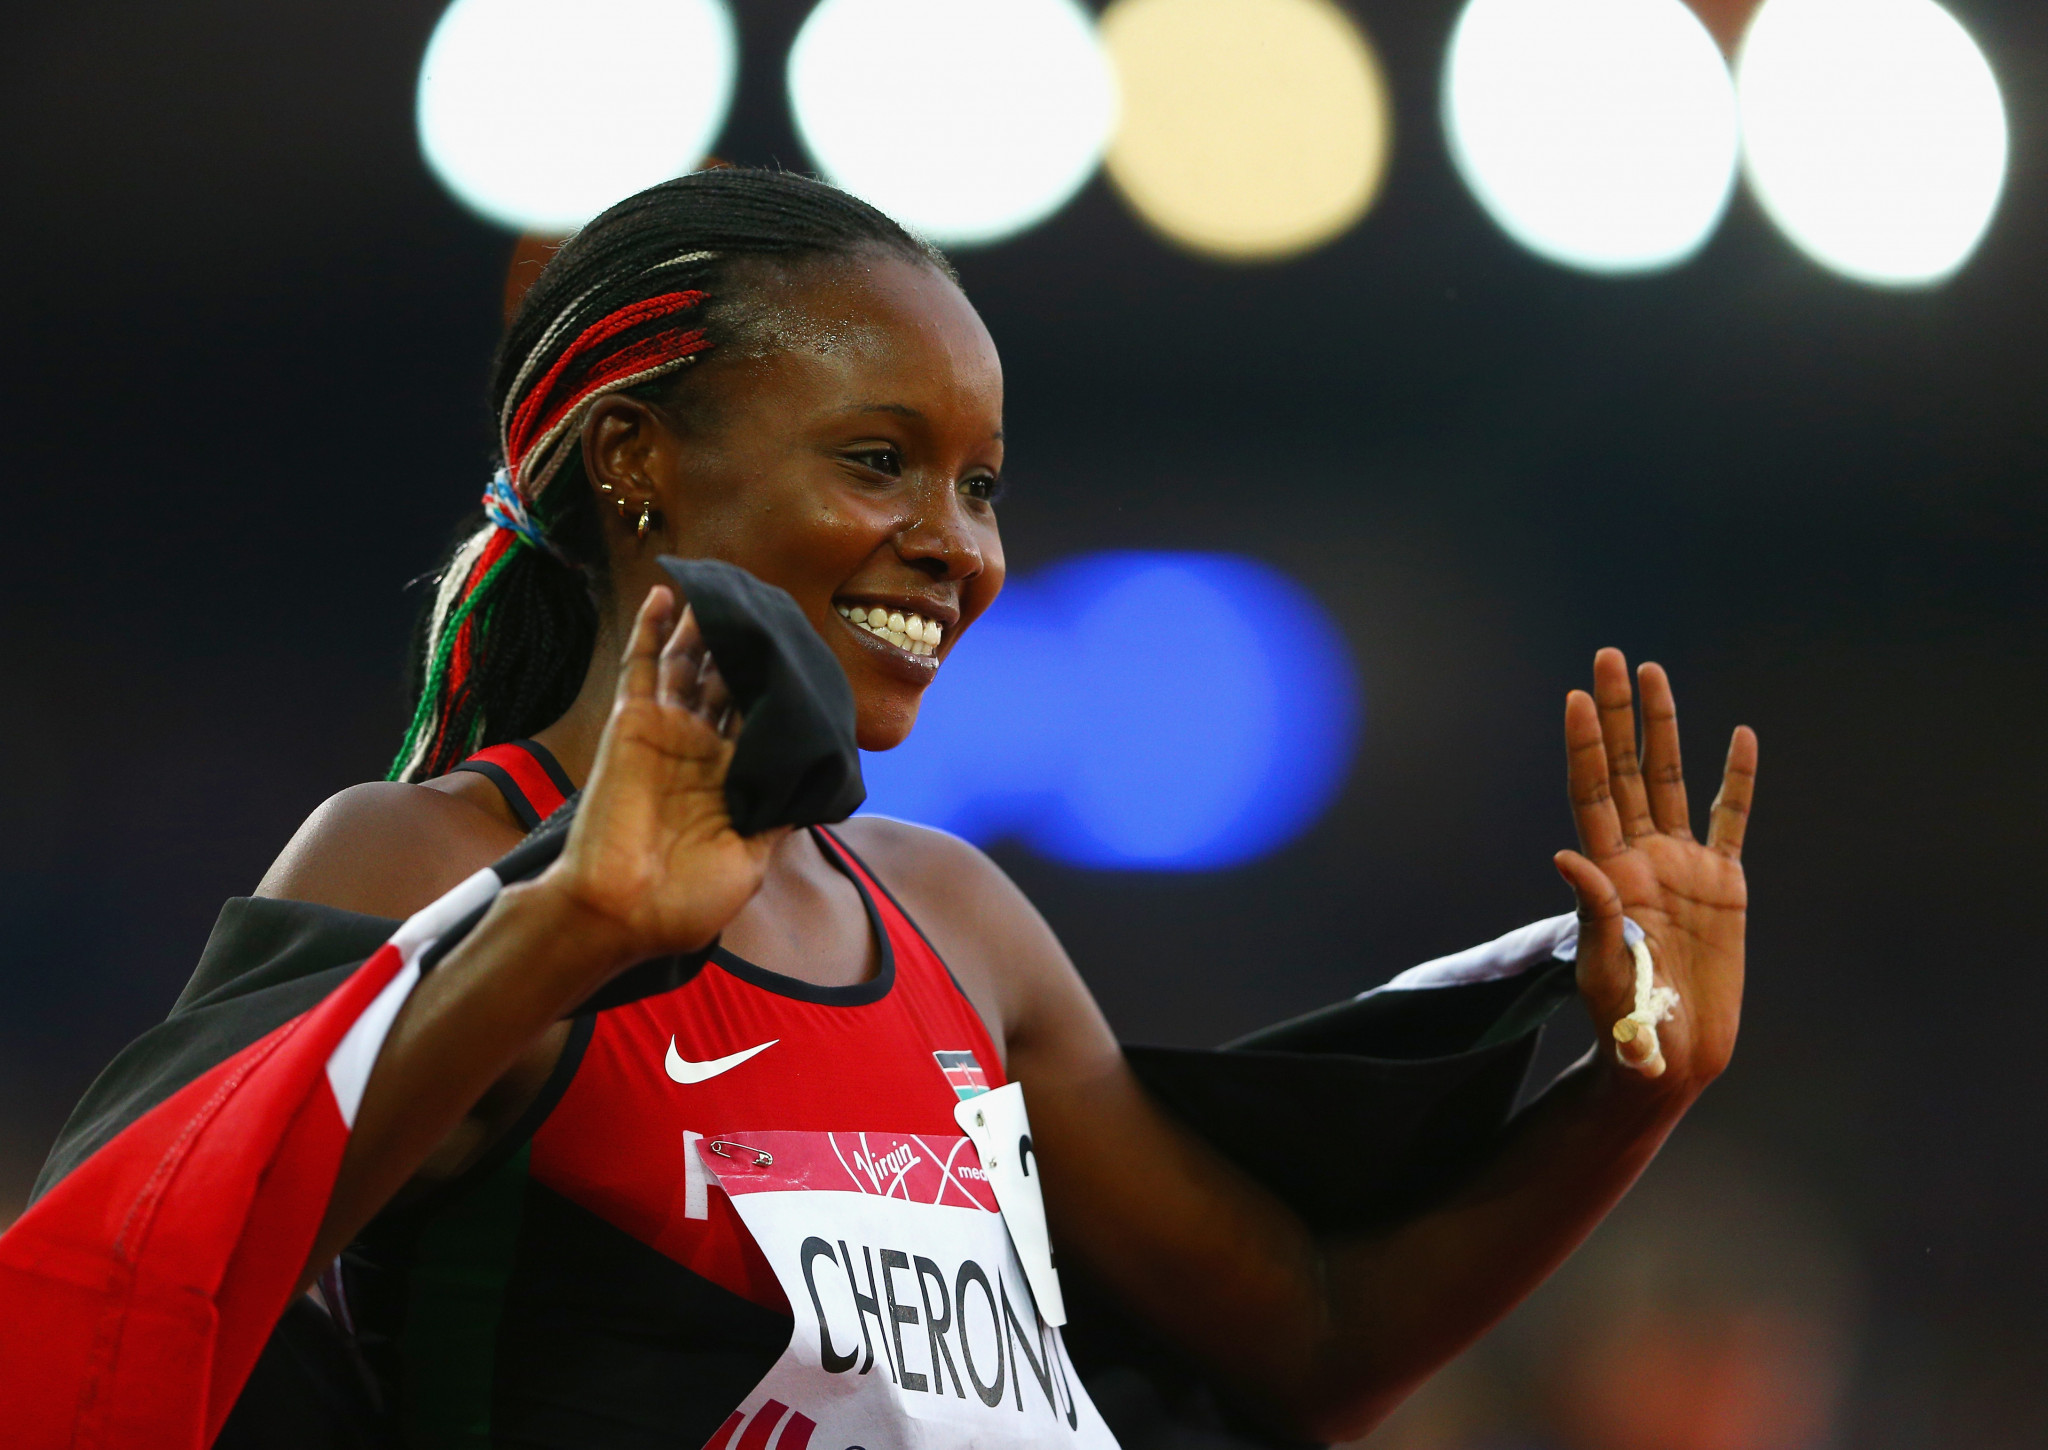 Mercy Cherono, winner of the 5,000m at Glasgow 2014, is among six defending Commonwealth Games champions from set to miss Gold Coast 2018 ©Getty Images